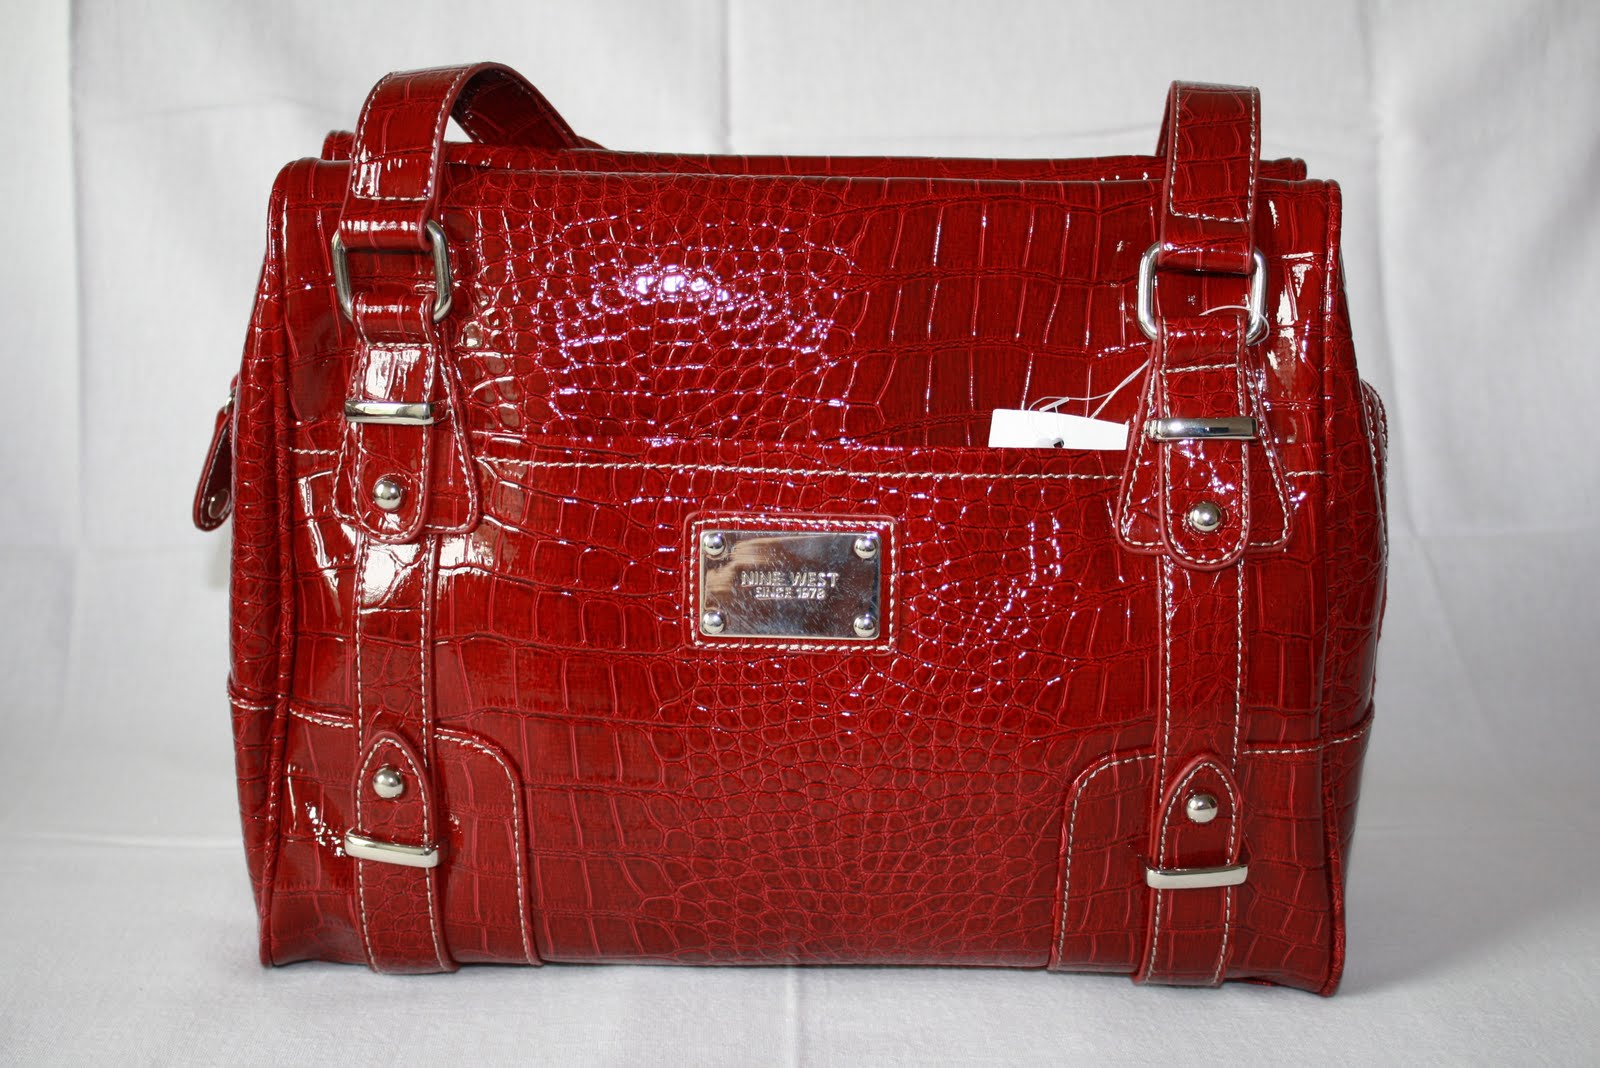 Red Nine West Purse In Handbags Totes Compare Prices Read